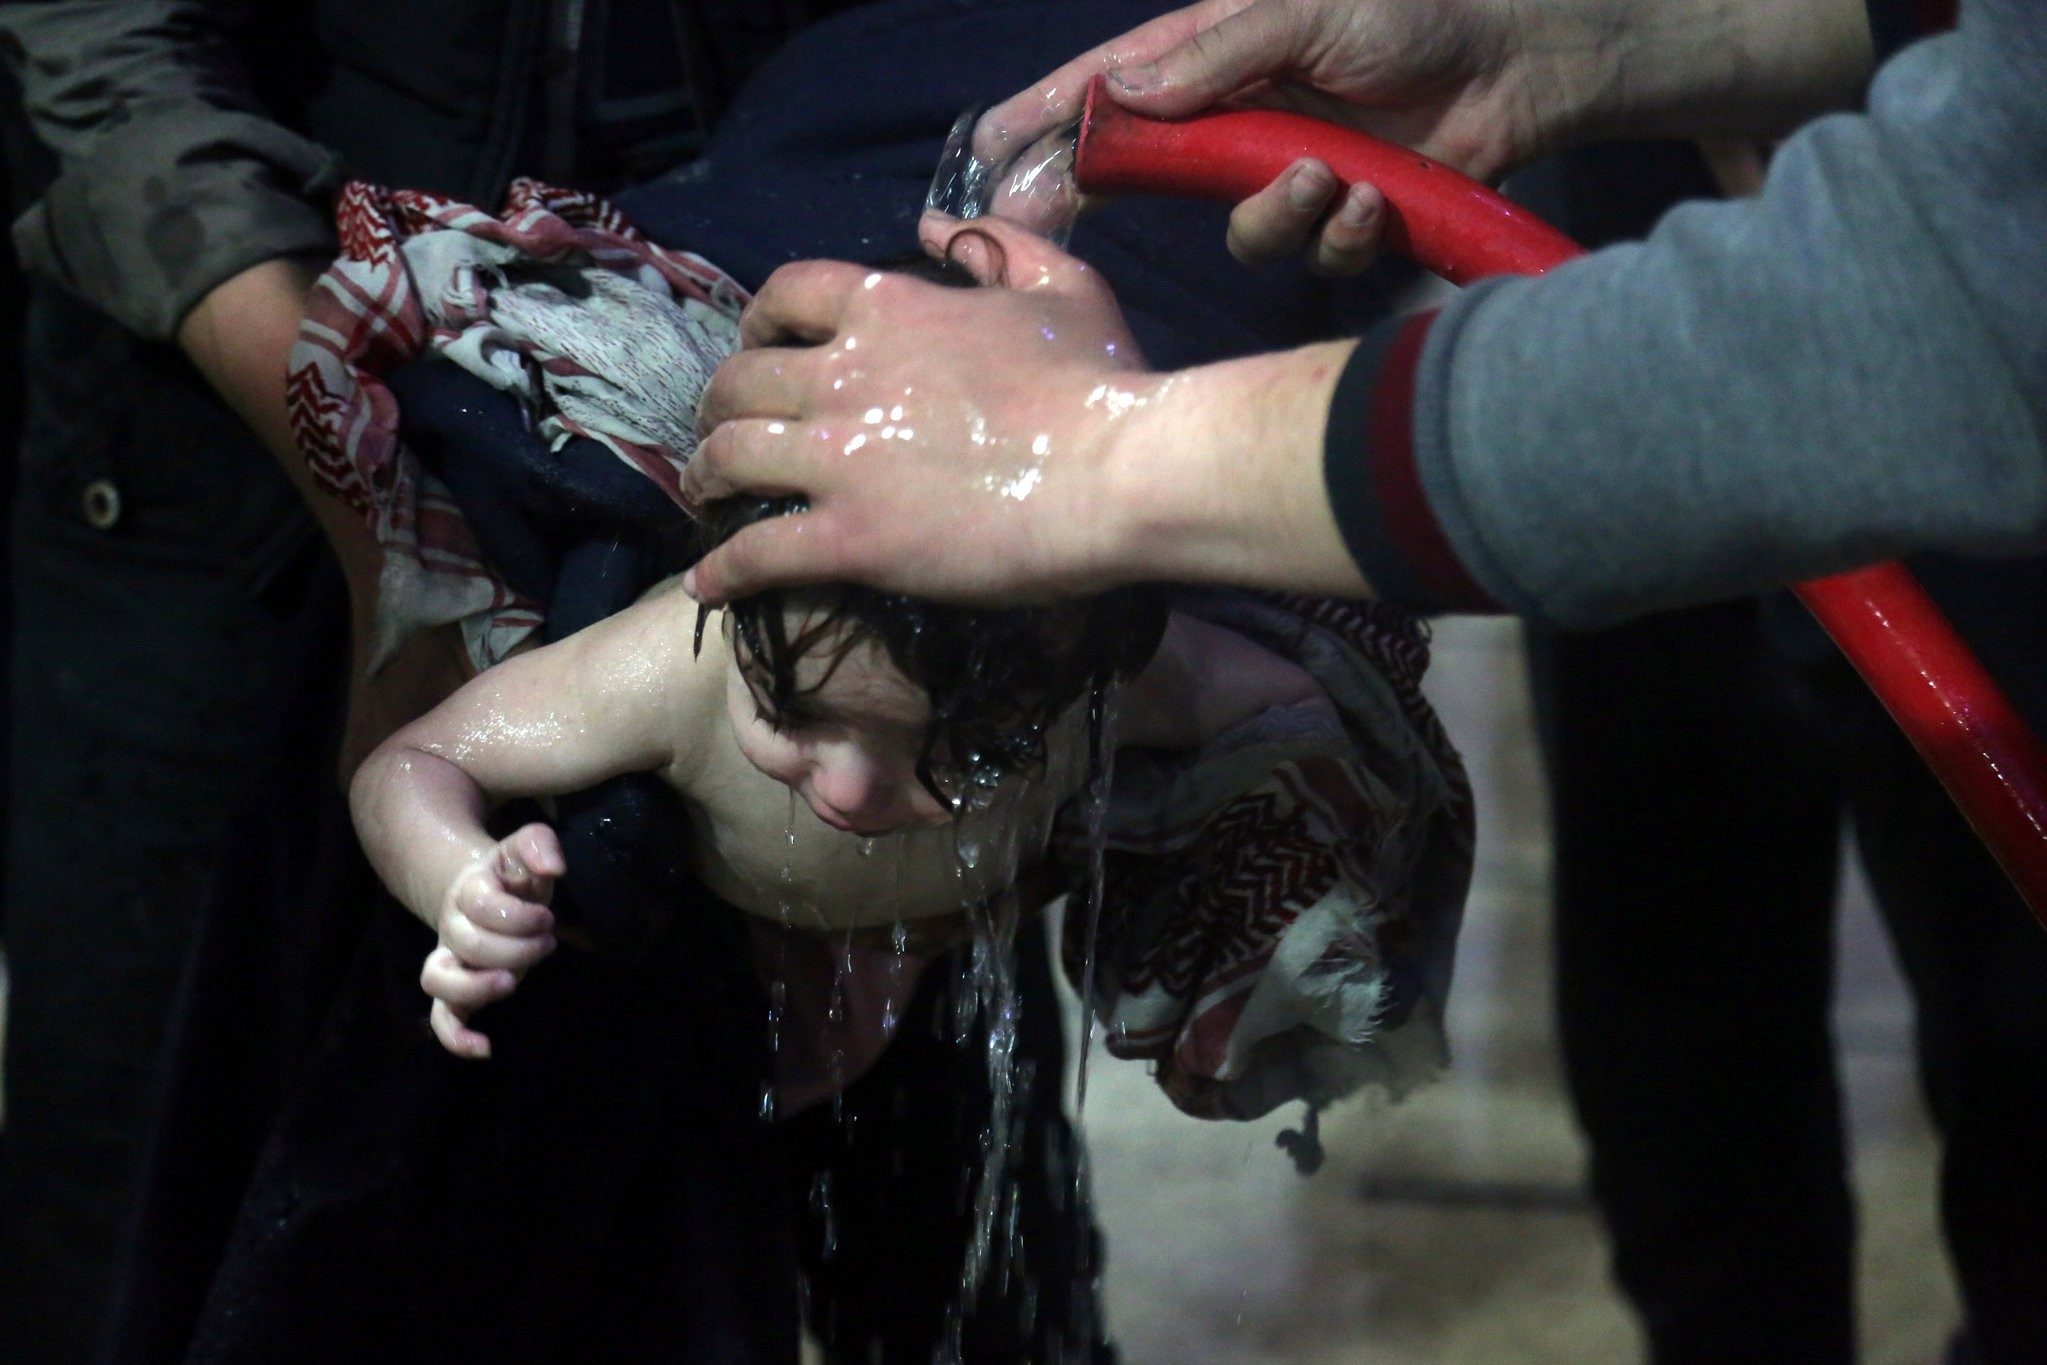 A child is treated in a hospital in Douma after the chemical attack on April 7.